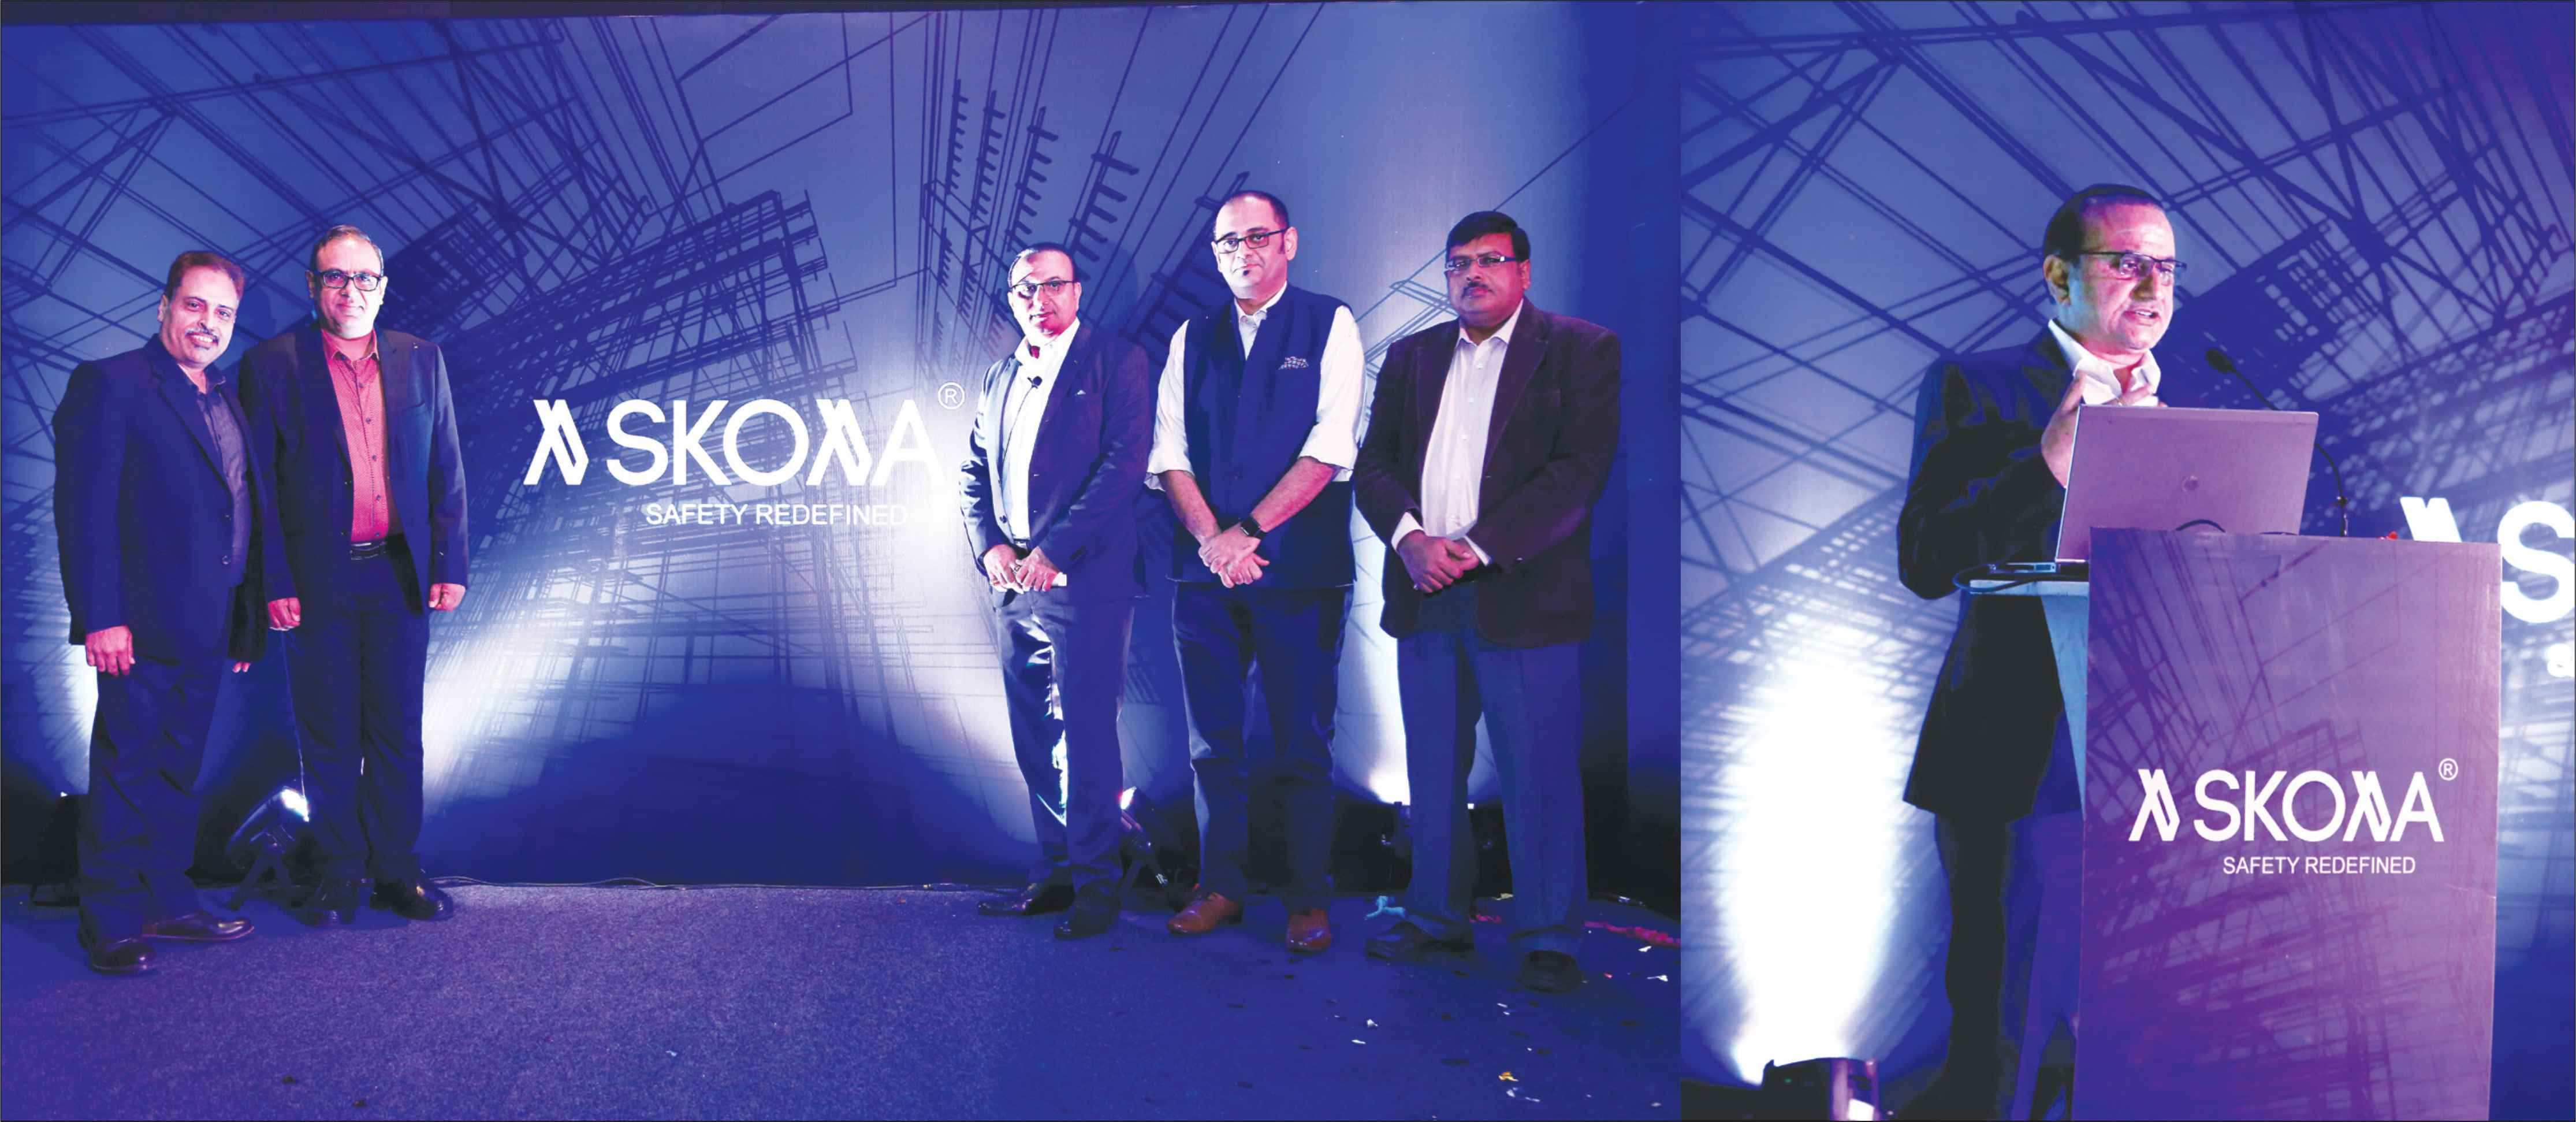 SKOAA Overseas aims to provide premium products at competitive prices